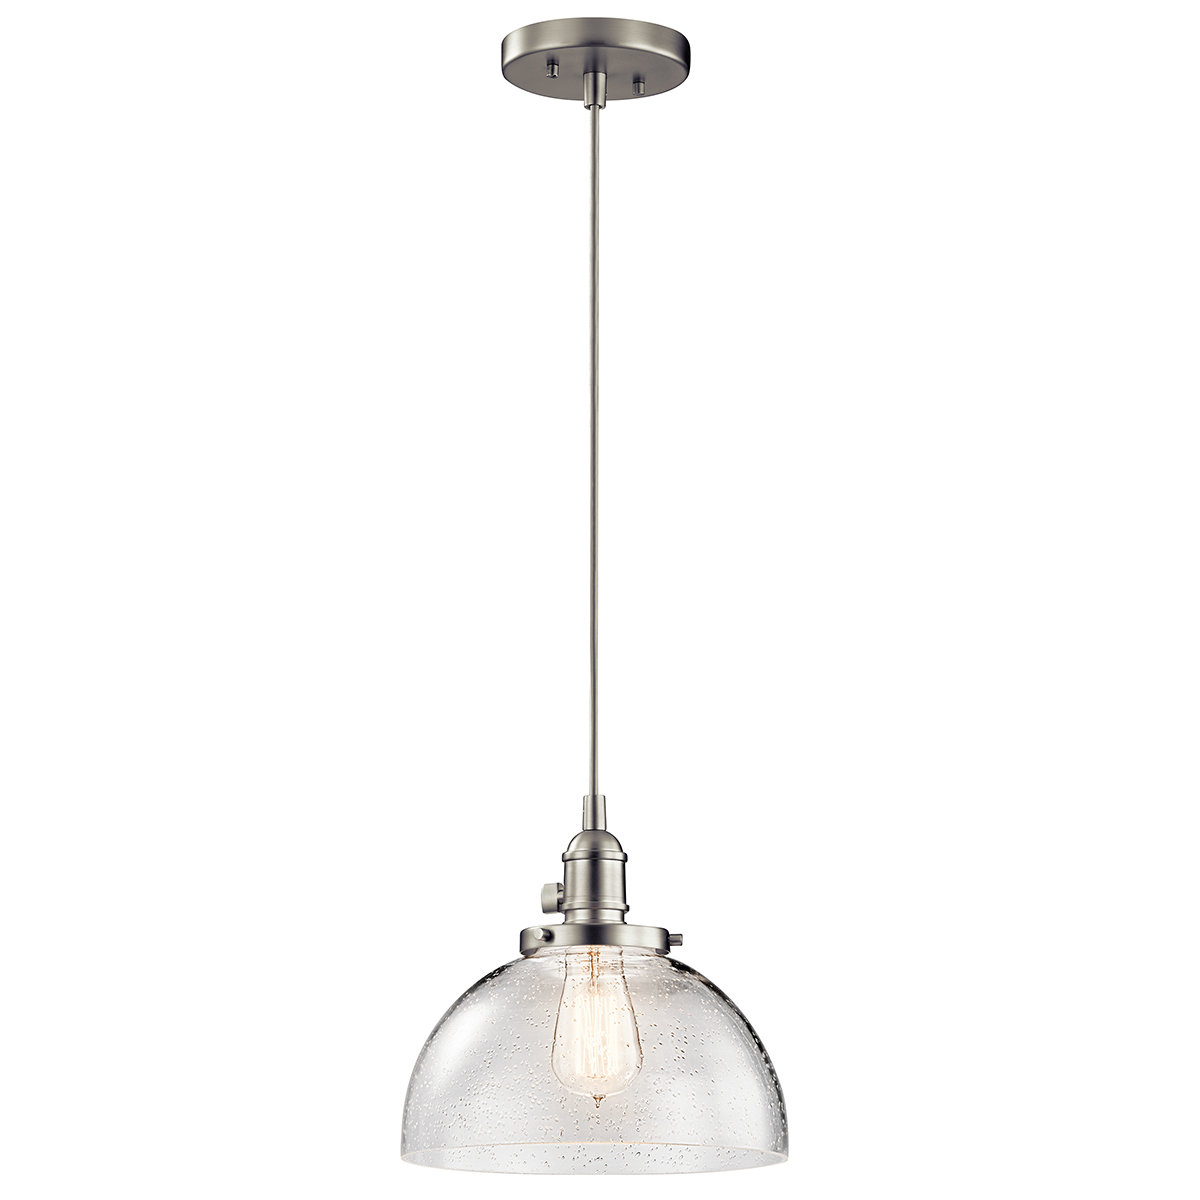 Antioch 1 Light Dome Pendant Throughout Ninette 1 Light Dome Pendants (View 8 of 30)